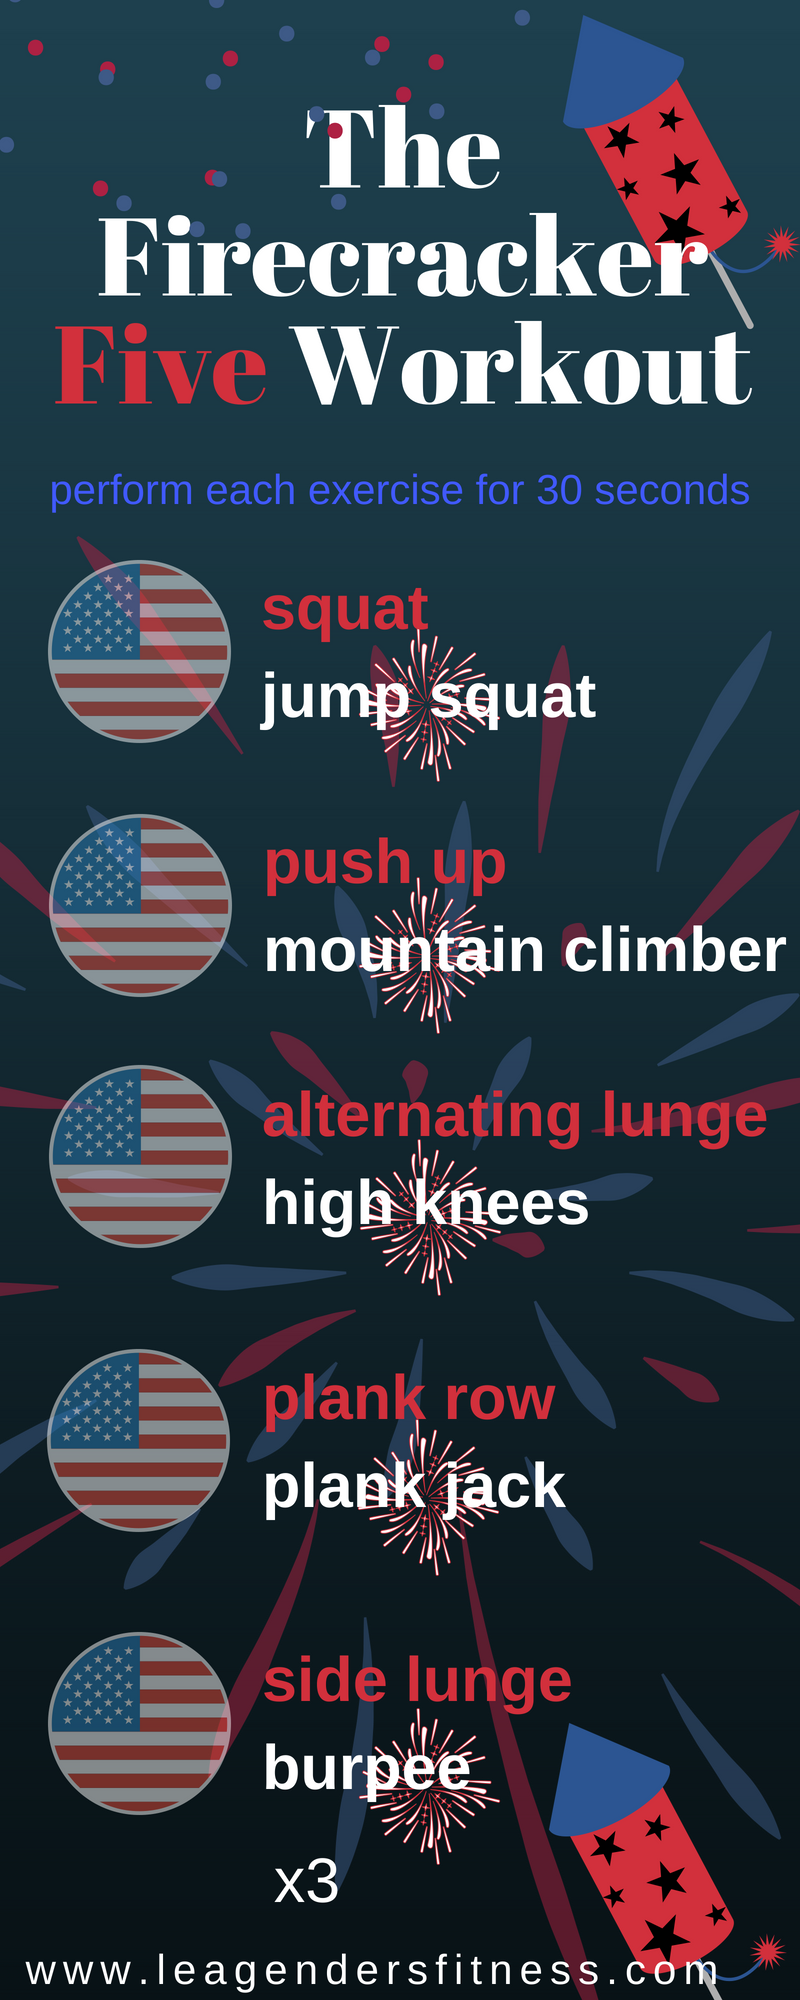 The firecracker five workout. Save to your favorite Pinterest workout board for later.